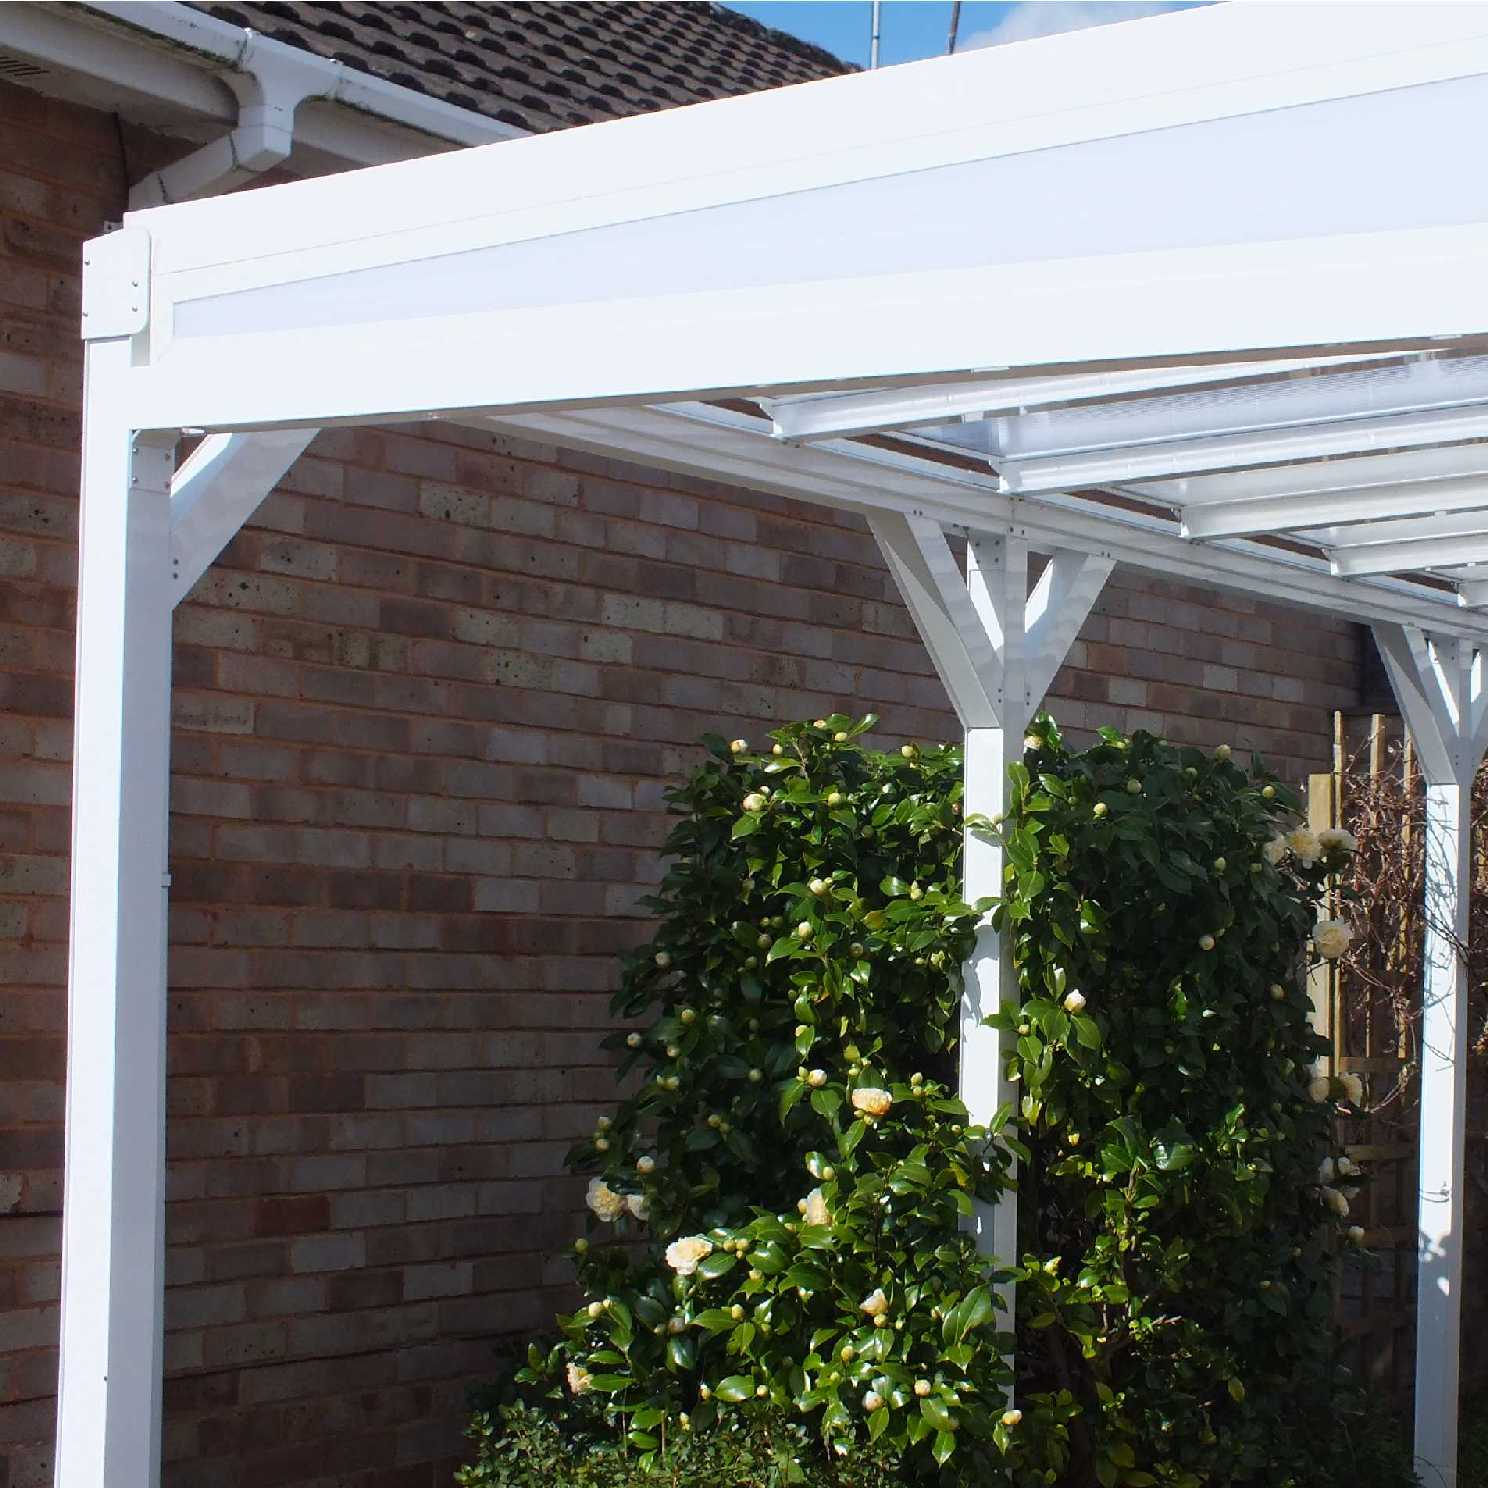 Omega Smart White Lean-To Canopy with 16mm Polycarbonate Glazing - 12.0m (W) x 2.0m (P), (5) Supporting Posts from Omega Build